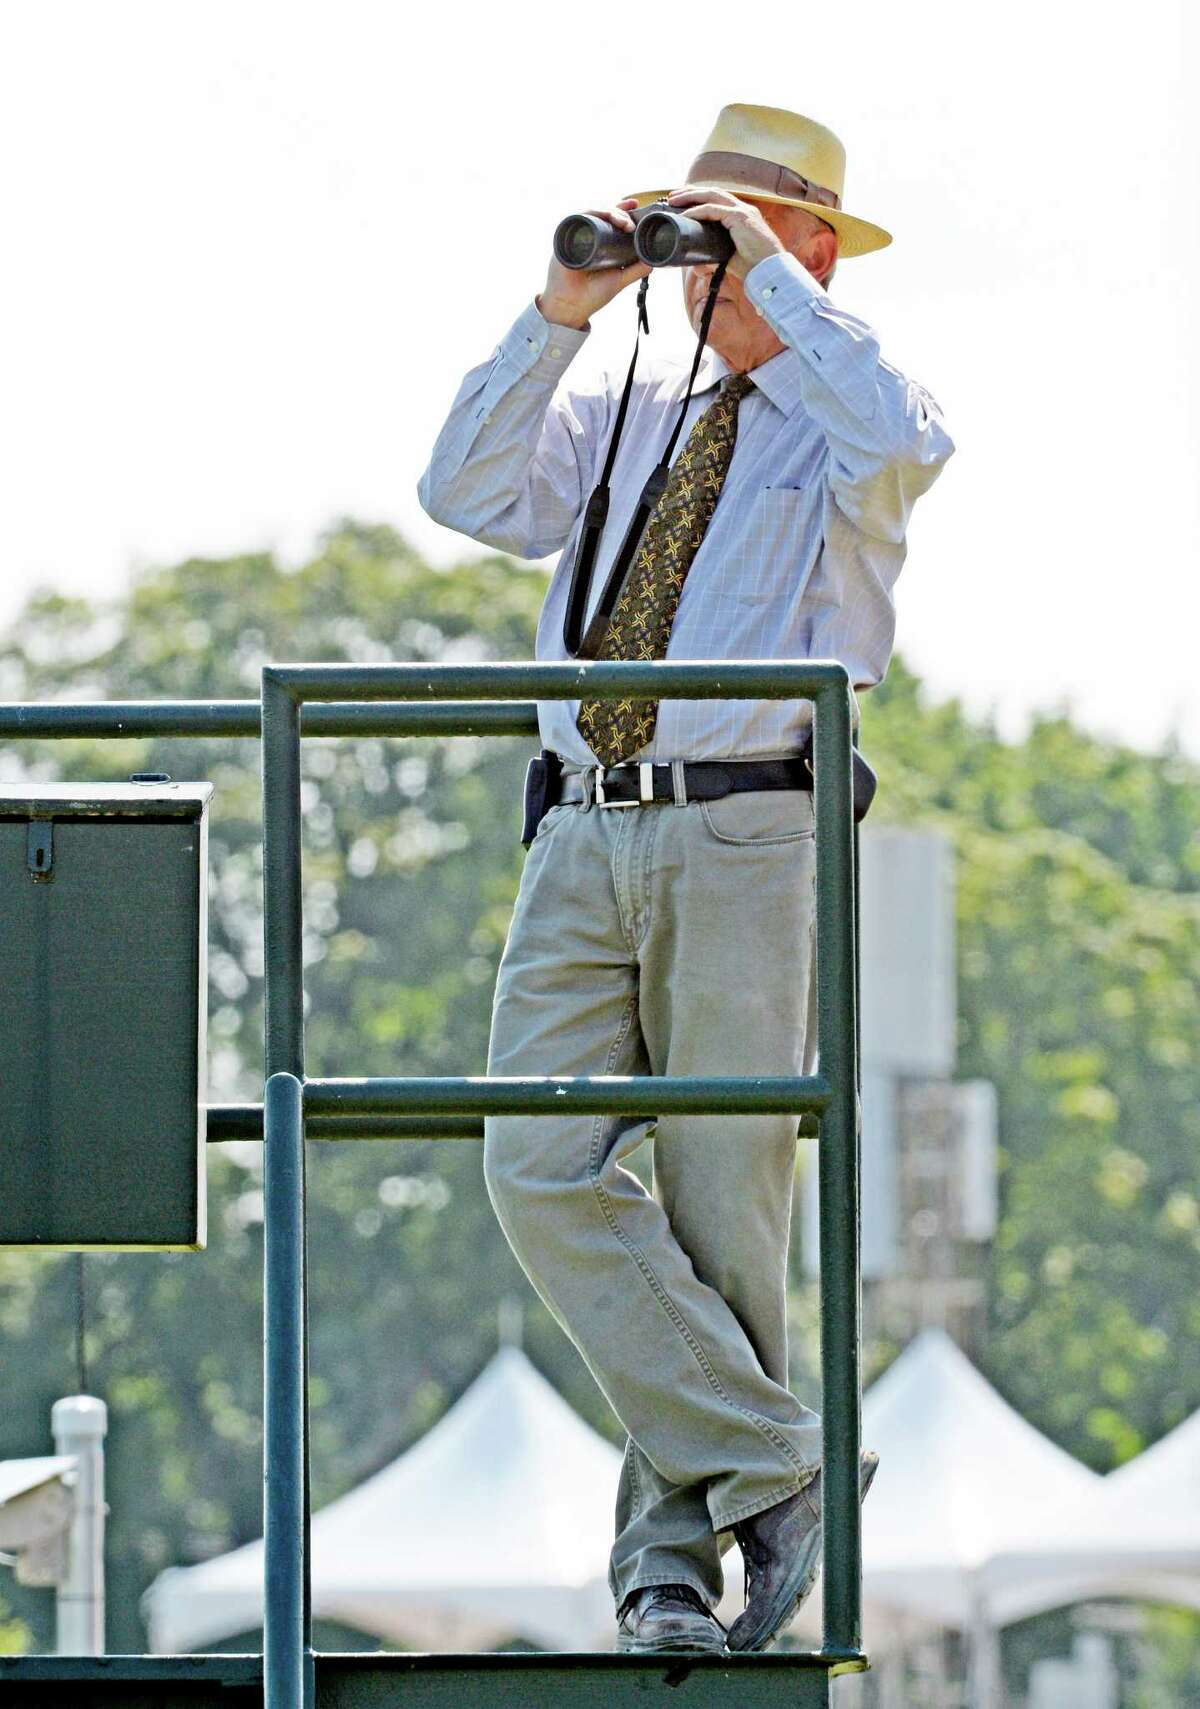 Pddock & patrol judge Peter T. FitzGerald watches a race from his judges stand at Saratoga Race Course Monday, July, 22, 2013, in Saratoga Springs, N.Y. (Skip Dickstein/Times Union)